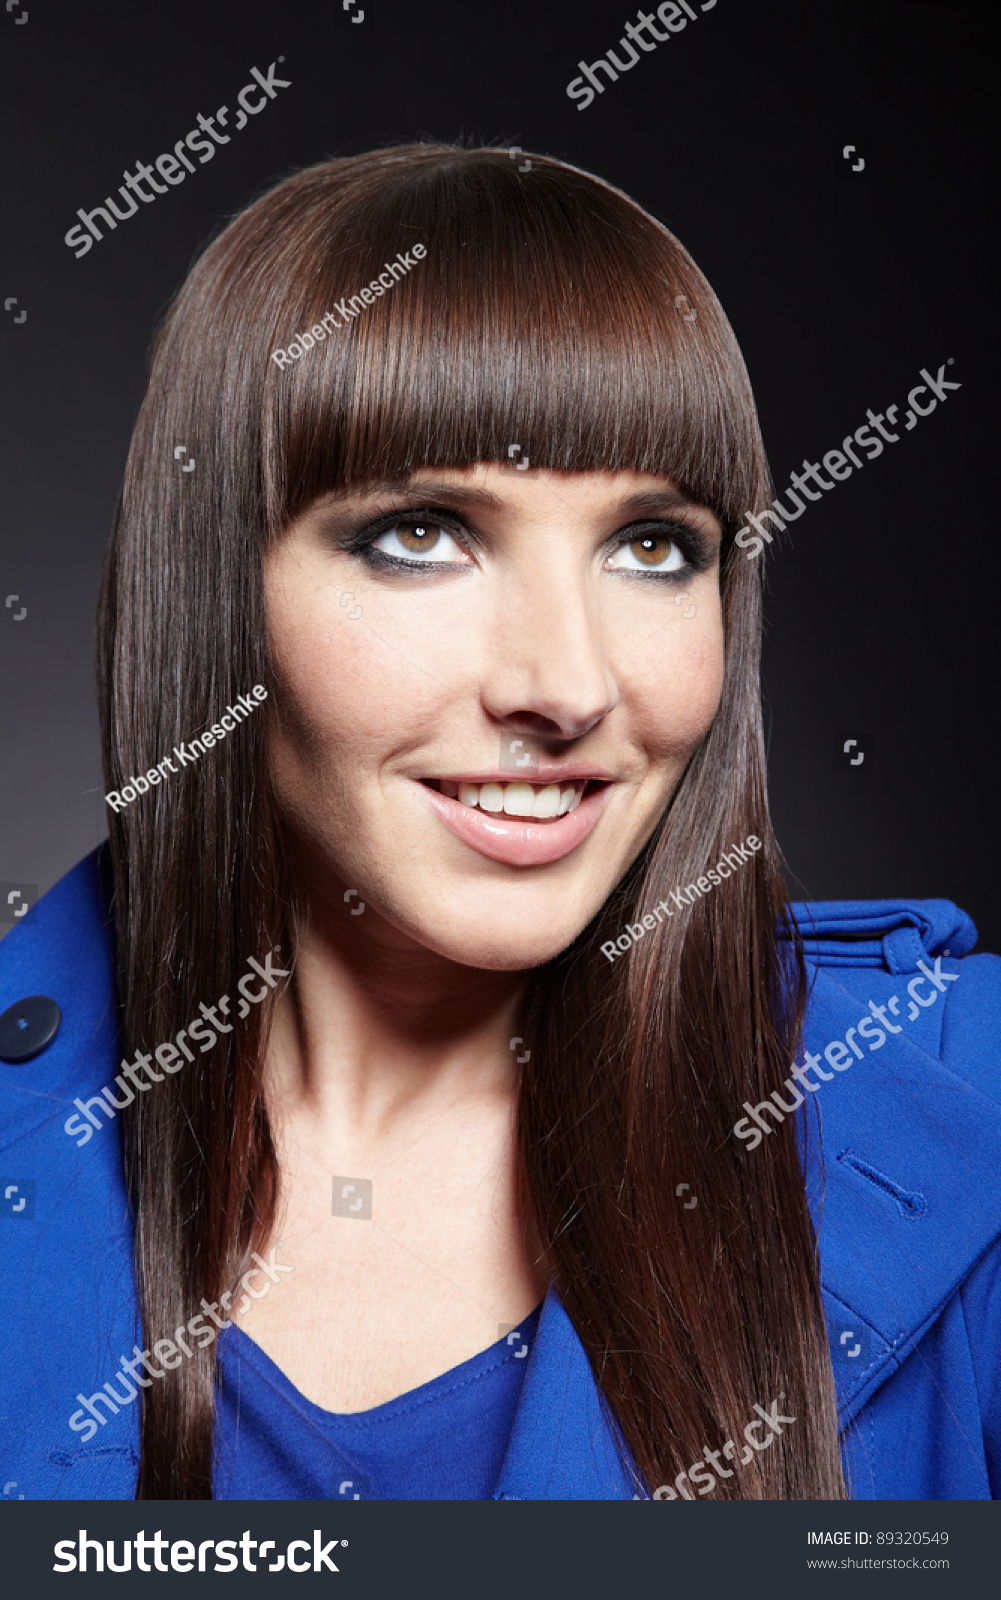 Smiling Woman Pageboy Haircut Looking Stock Photo Edit Now